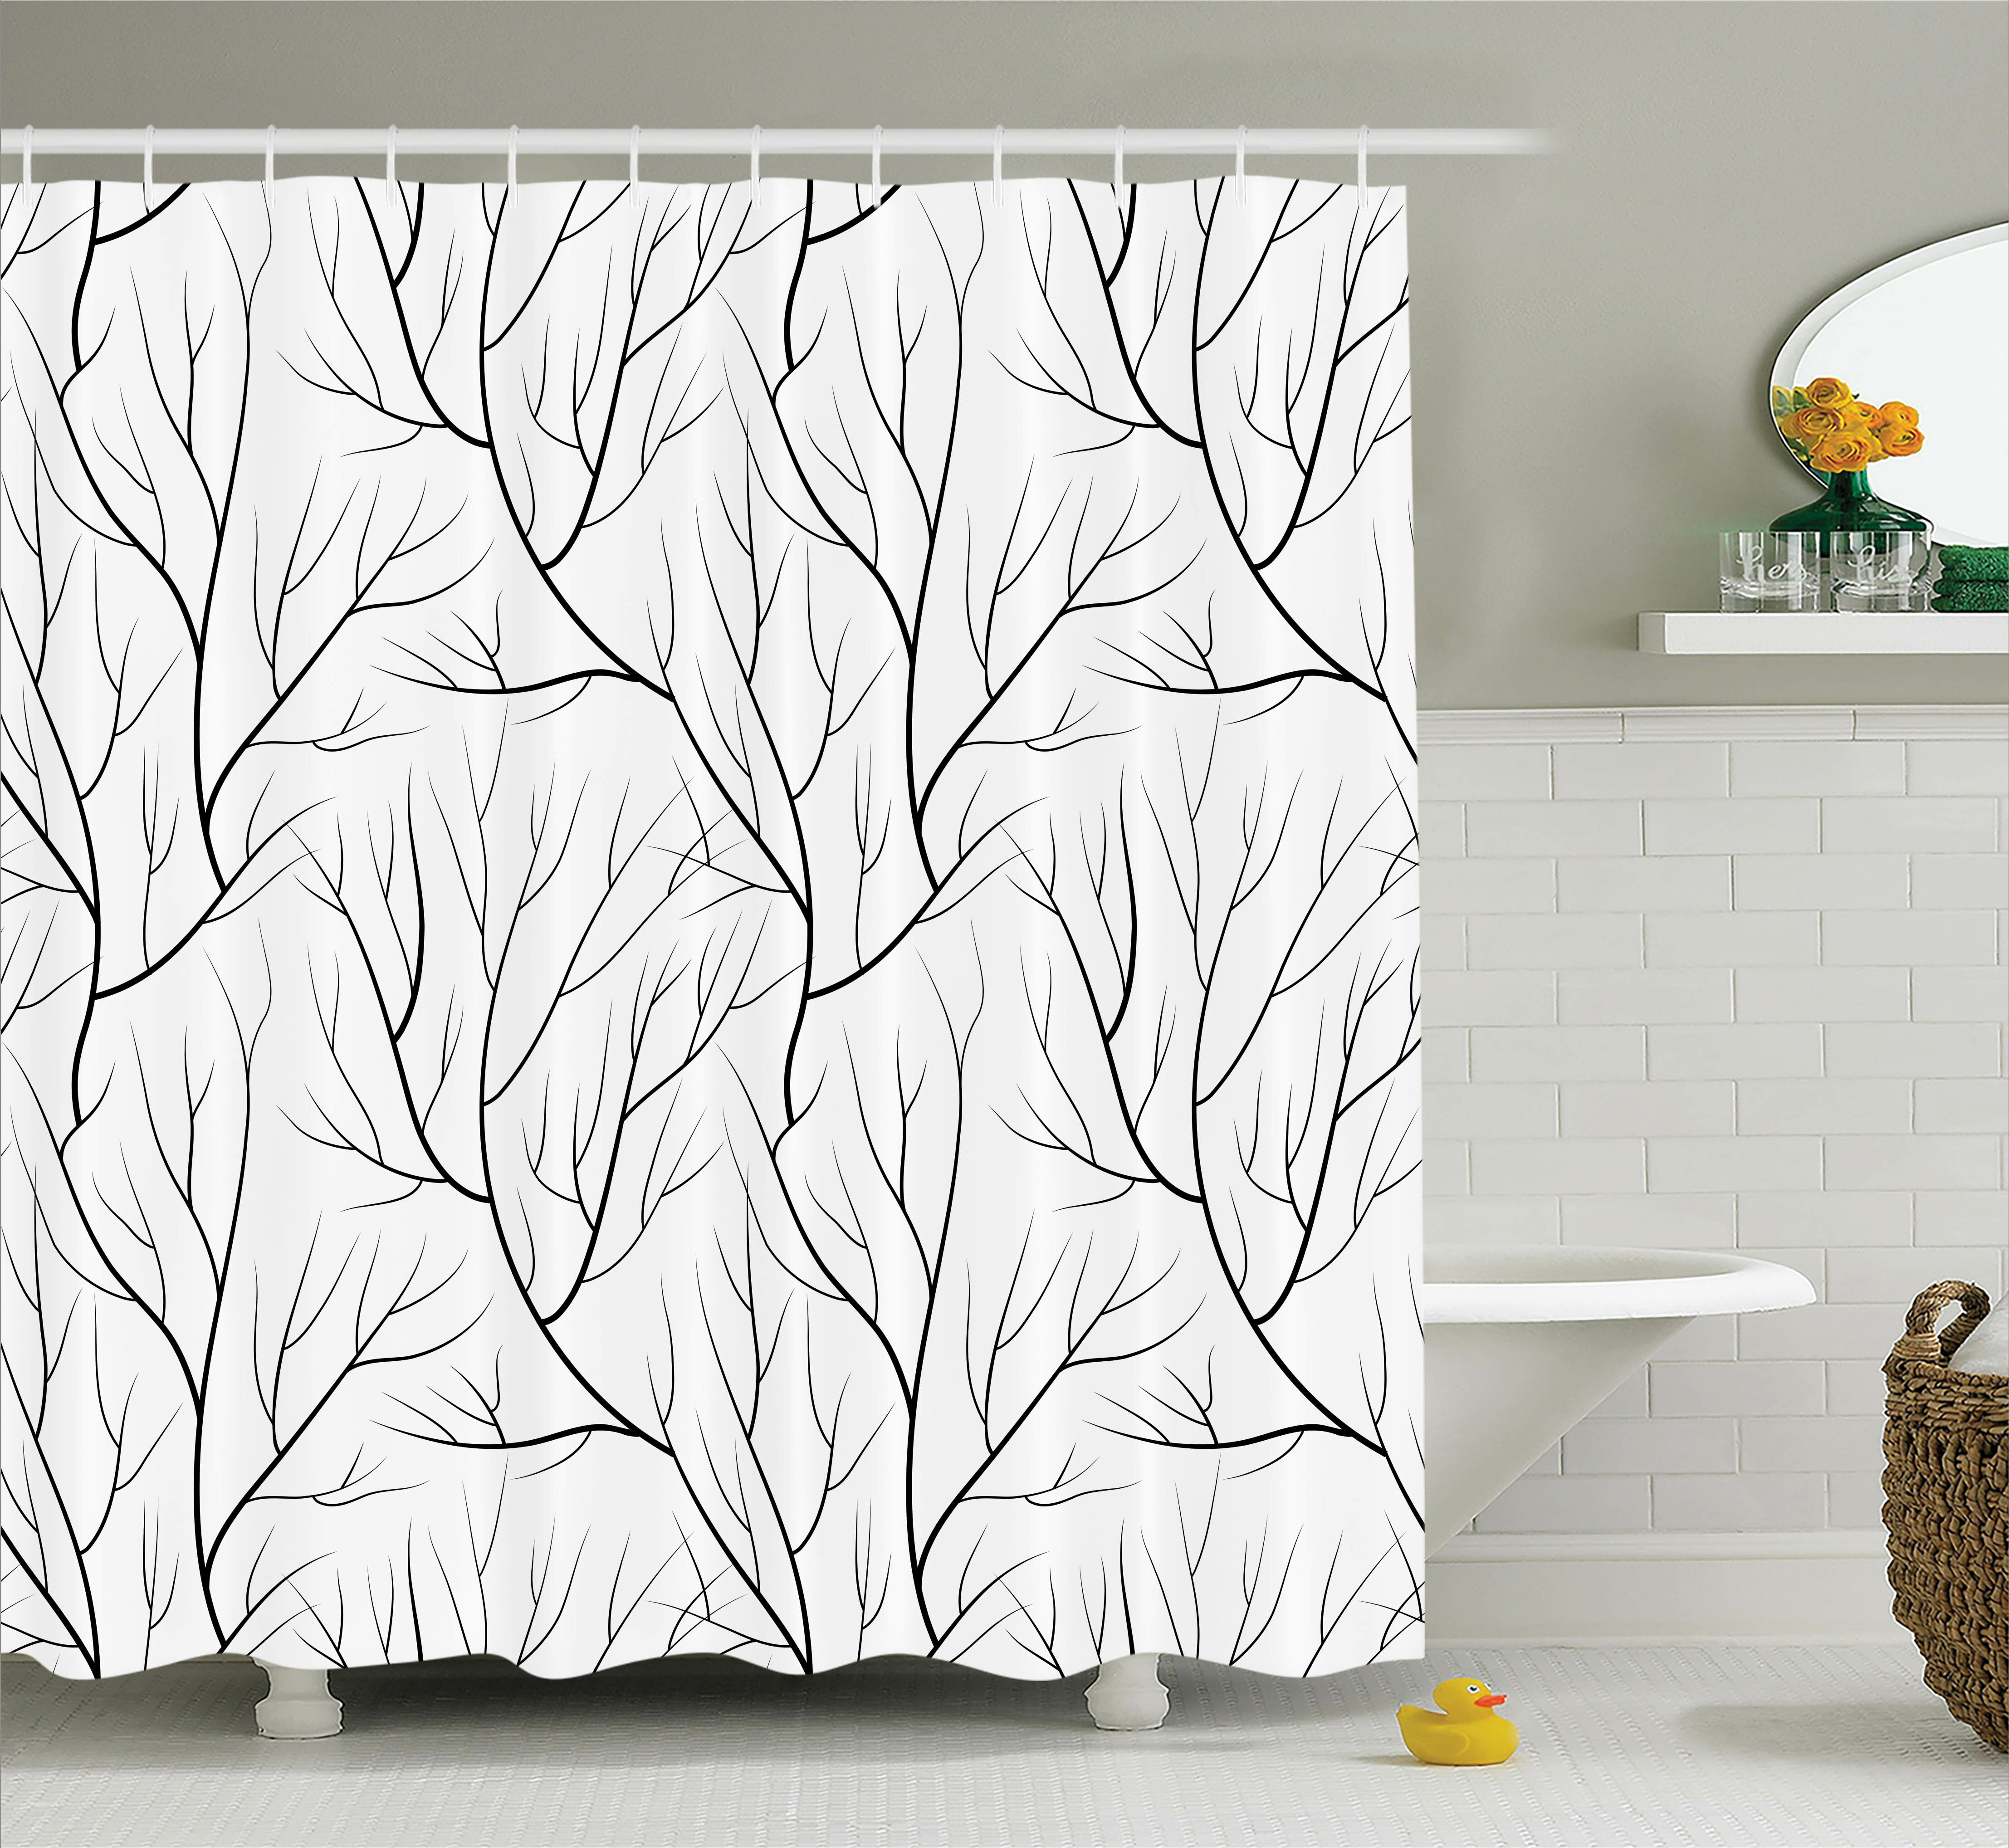 Ebern Designs Corinne Winter Tree Leaf Nature Theme Leafless Delicate Branches Pattern Japanese Style Shower Curtain